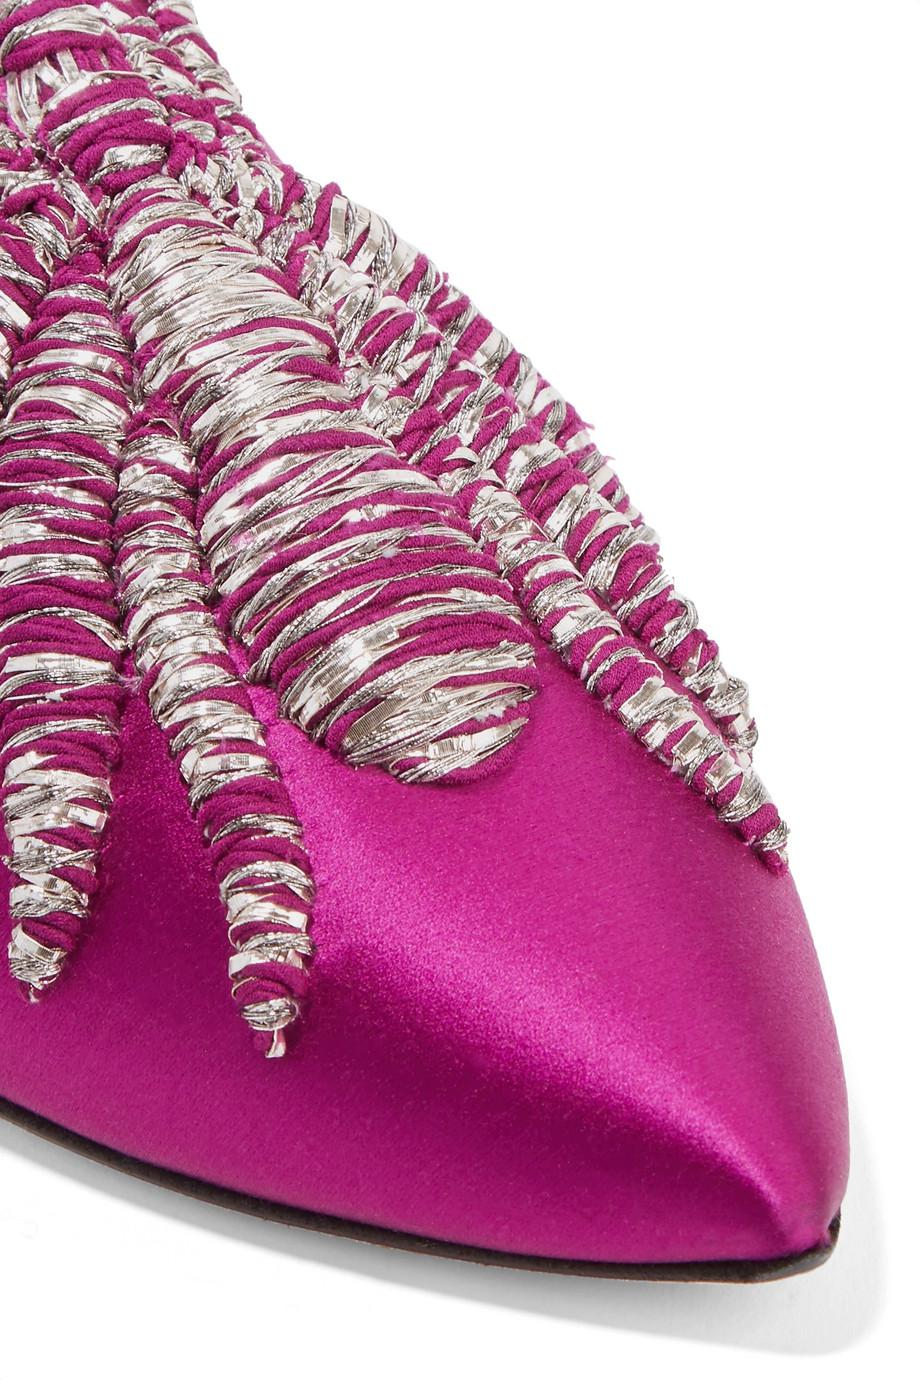 Ragno Embroidered Satin Slippers - Magenta Sanayi 313